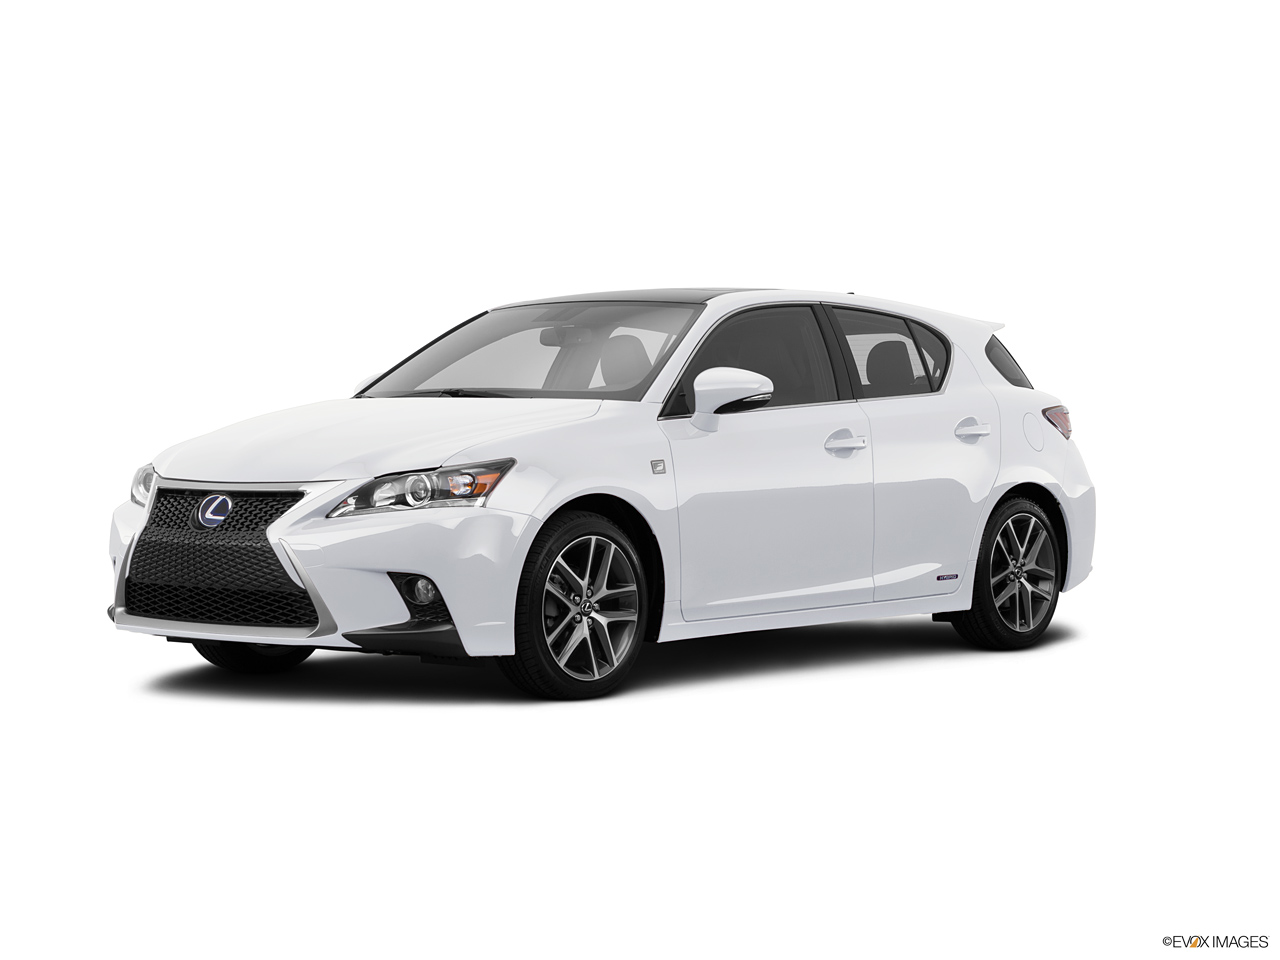 small resolution of lexus service by top rated mechanics at the convenience of your home or office